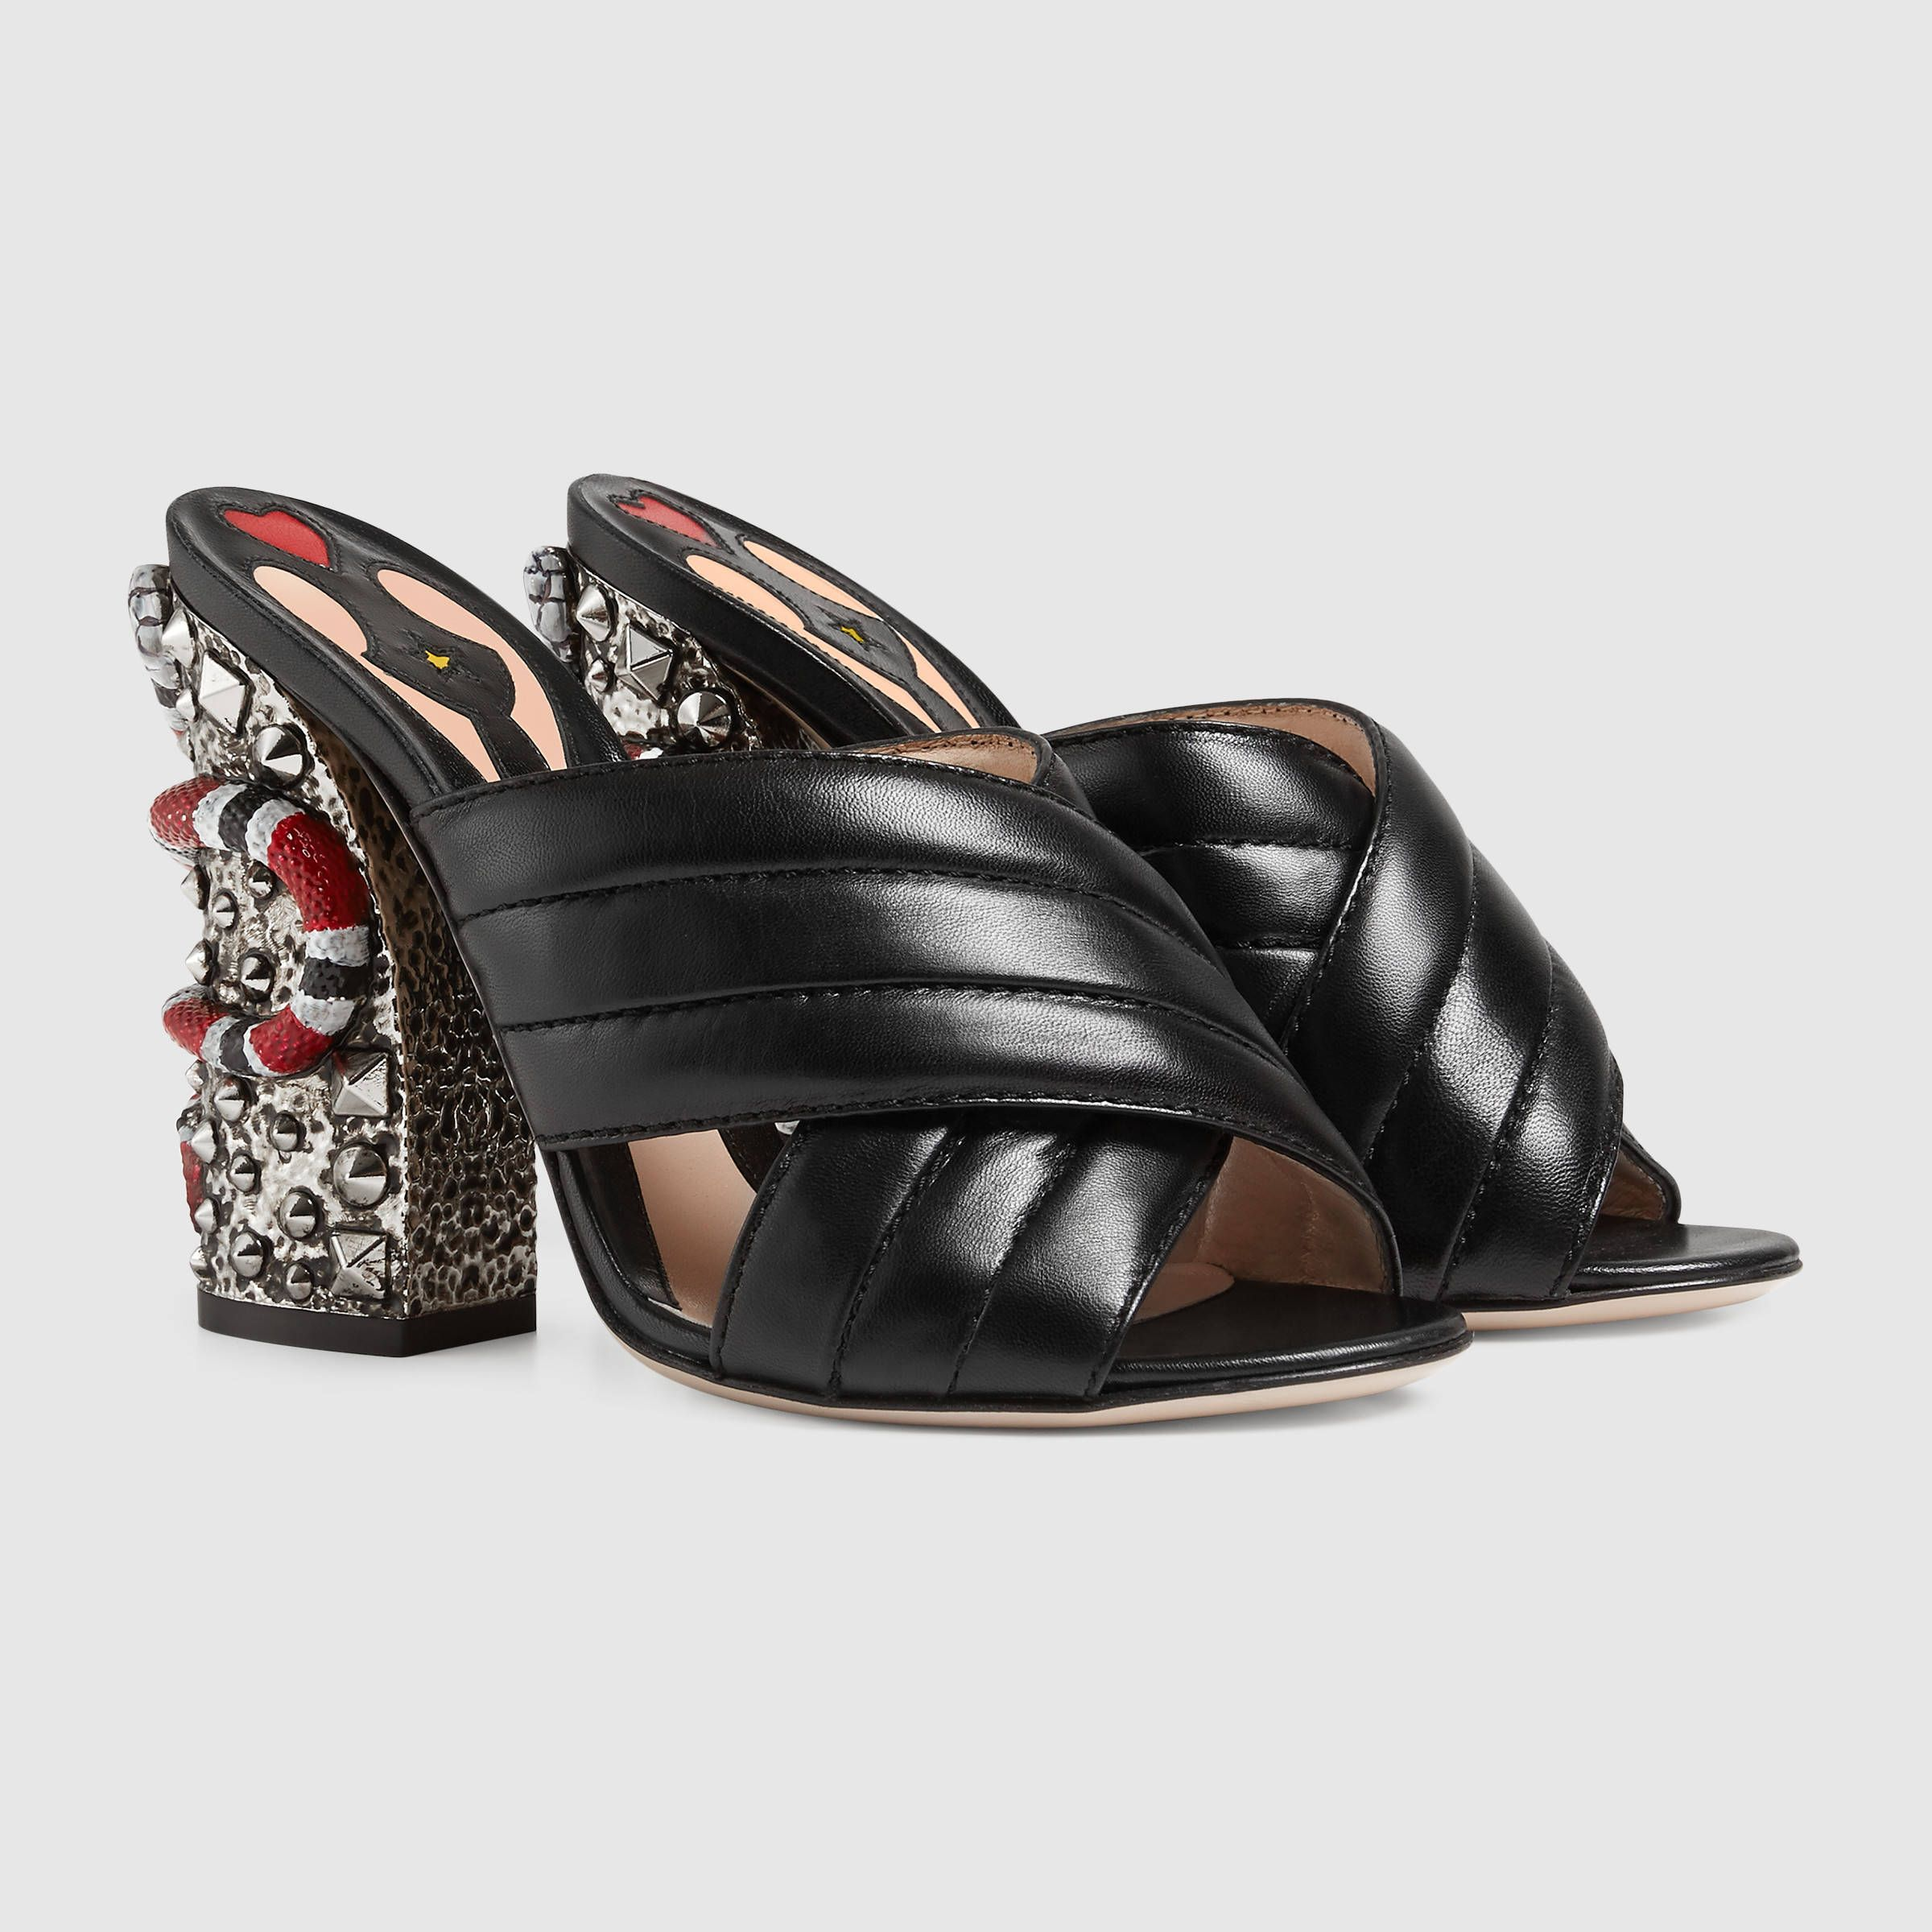 Gucci Leather Crossover Sandal   990 Style 423257 C9D00 1000 ... a56f28606